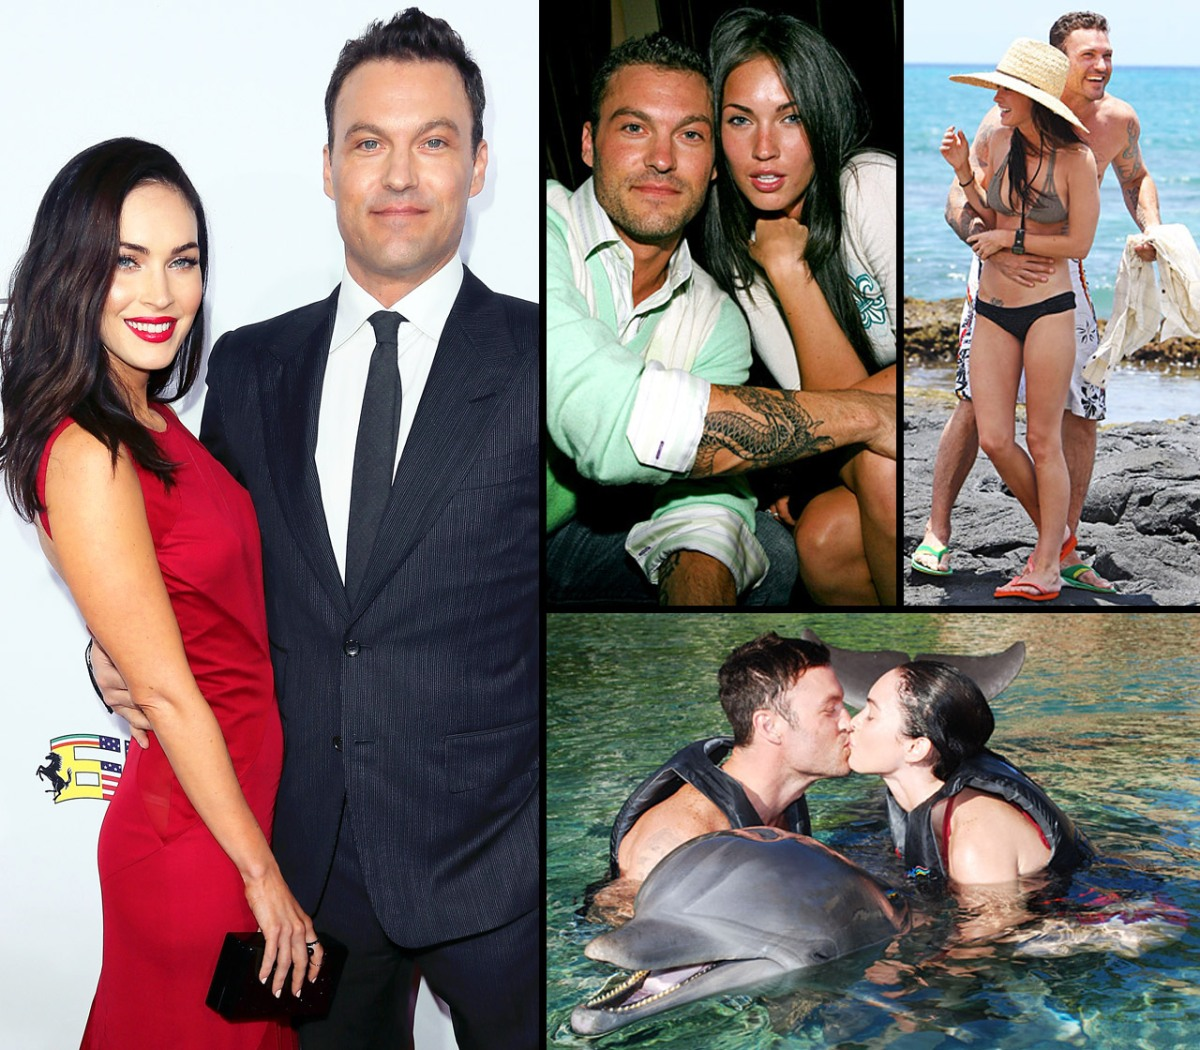 Brian Austin Green Girlfriends Complete megan fox and brian austin green: the way they were